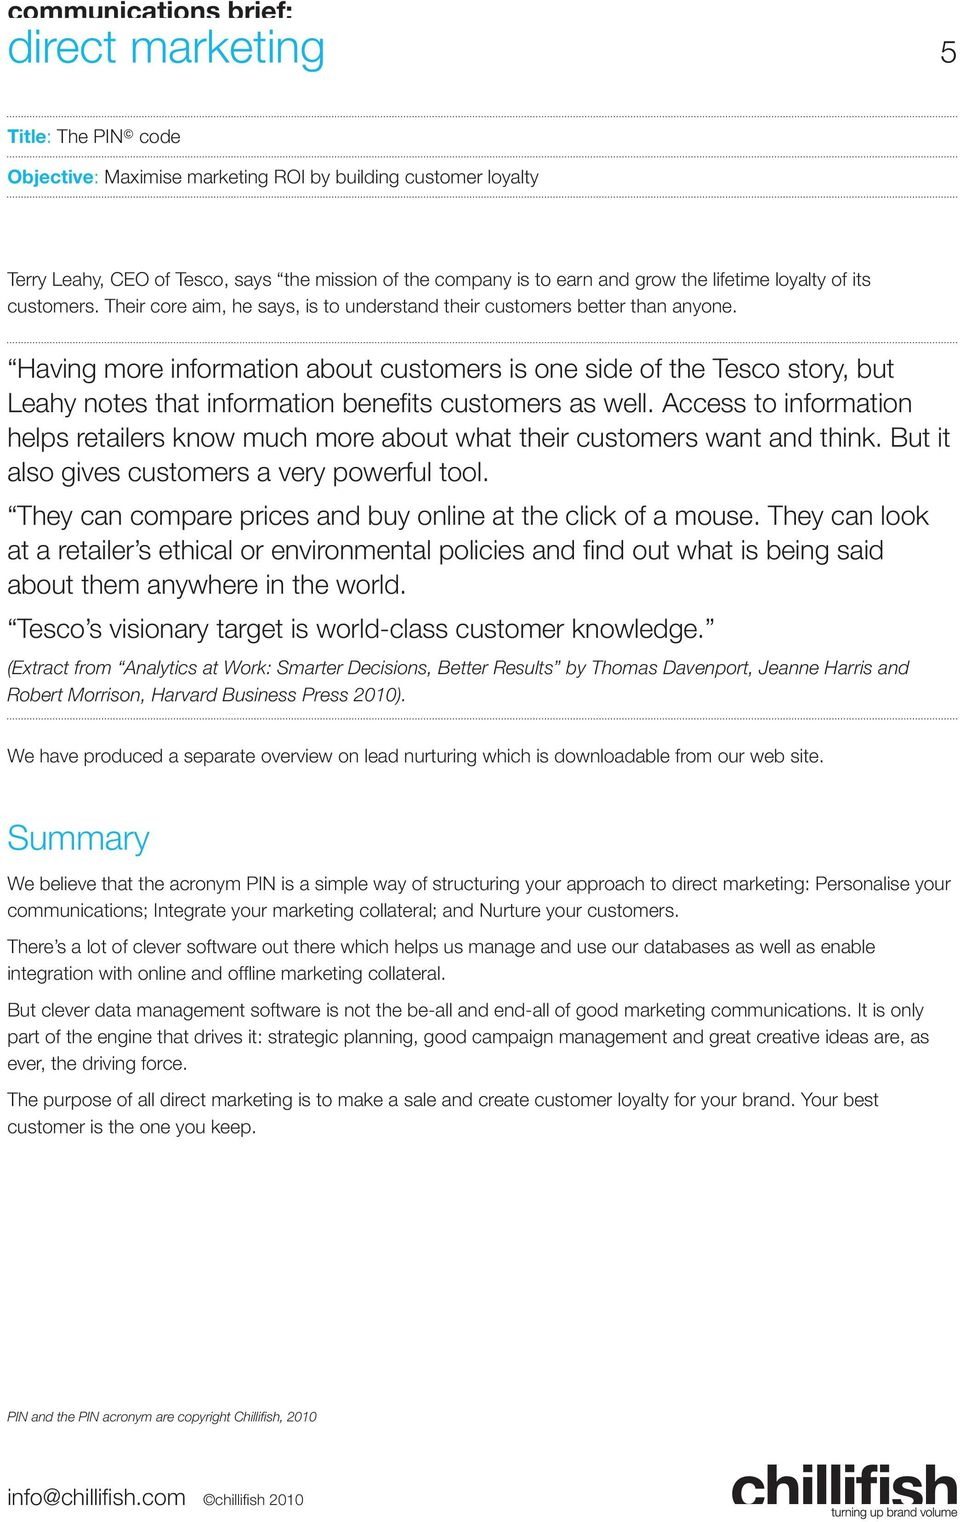 Having more information about customers is one side of the Tesco story, but Leahy notes that information benefi ts customers as well.